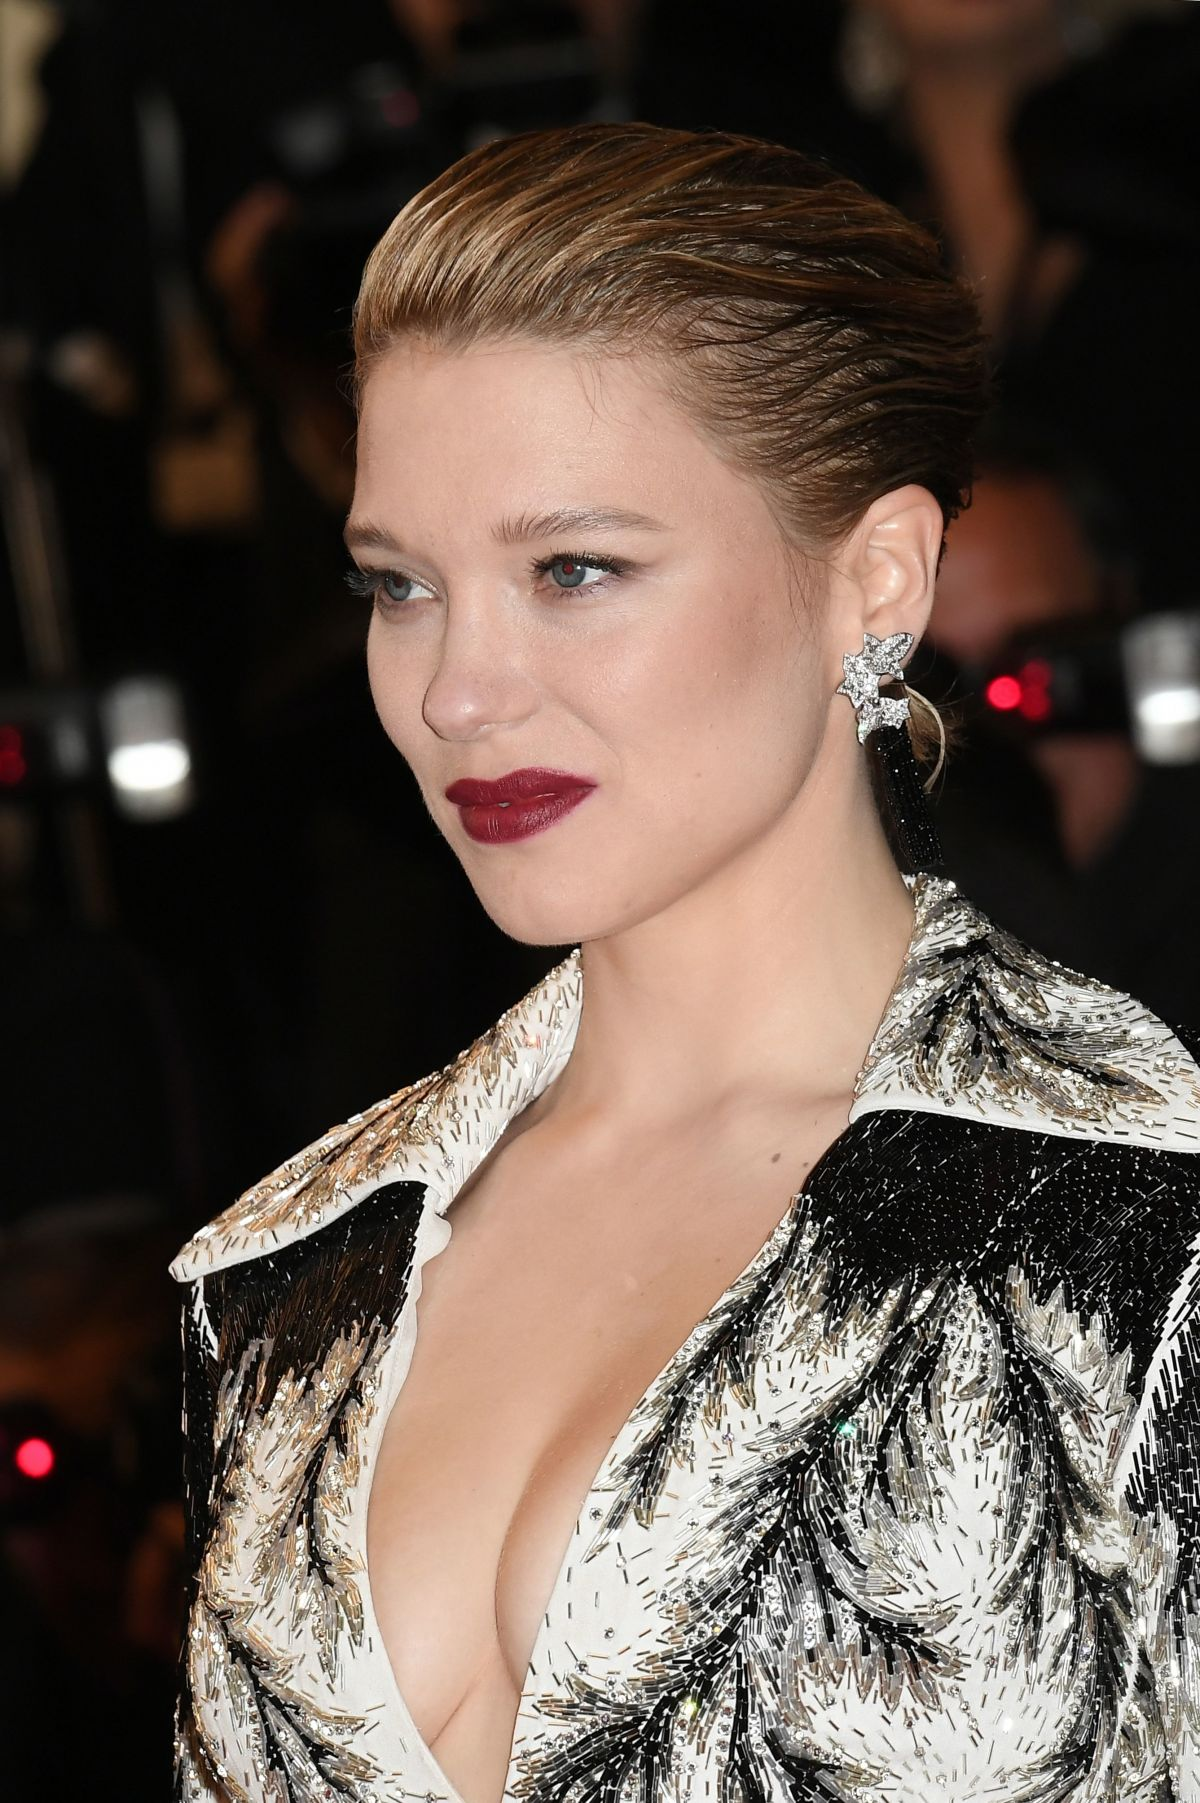 Lea Seydoux In Elle Magazine France February 2014 Issue: LEA SEYDOUX At Cold War Screening At 2018 Cannes Film